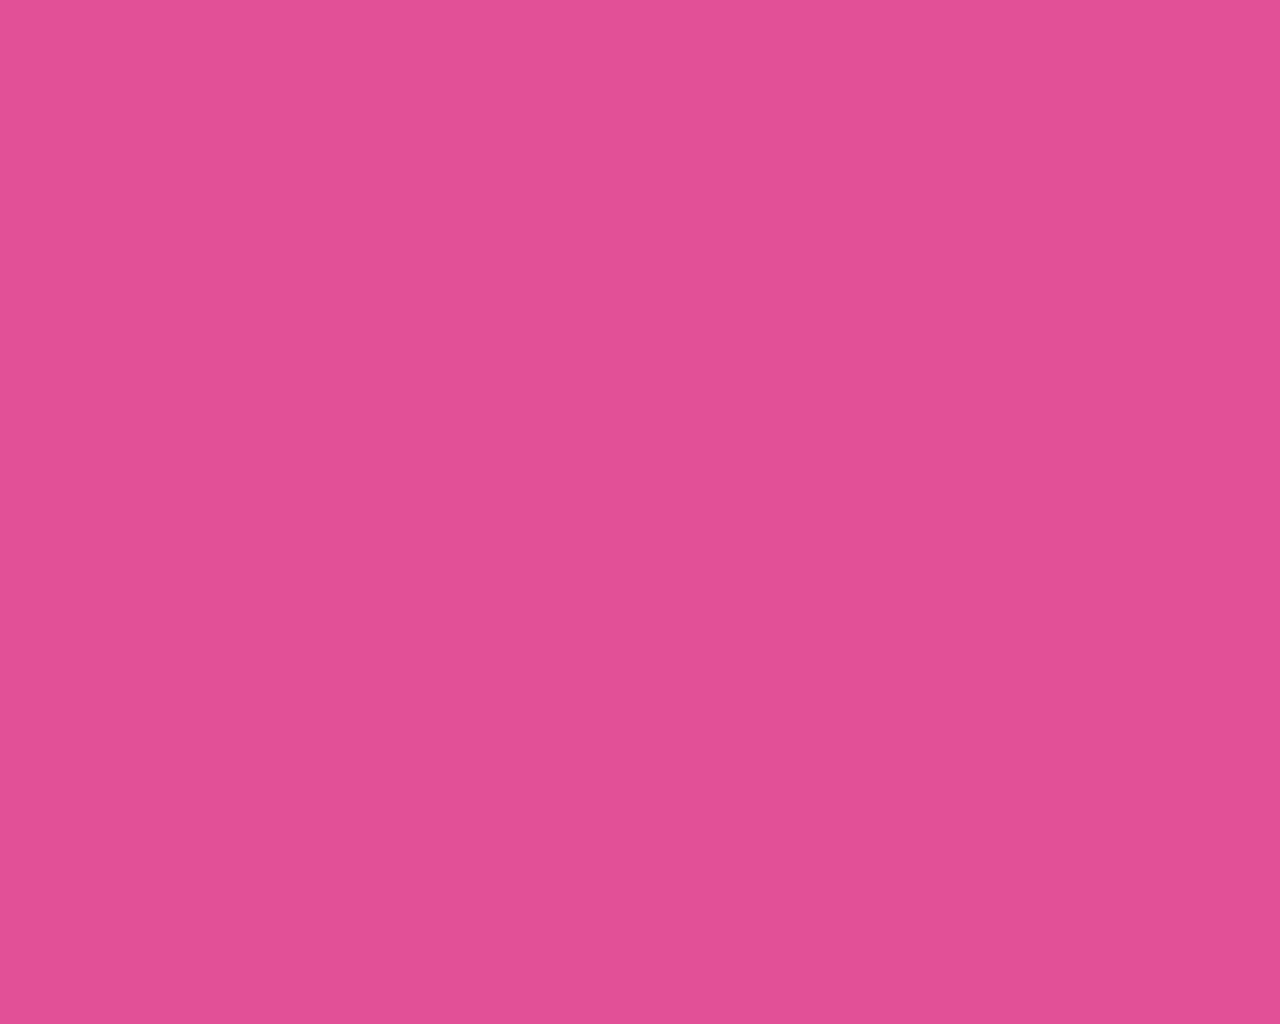 1280x1024 Raspberry Pink Solid Color Background